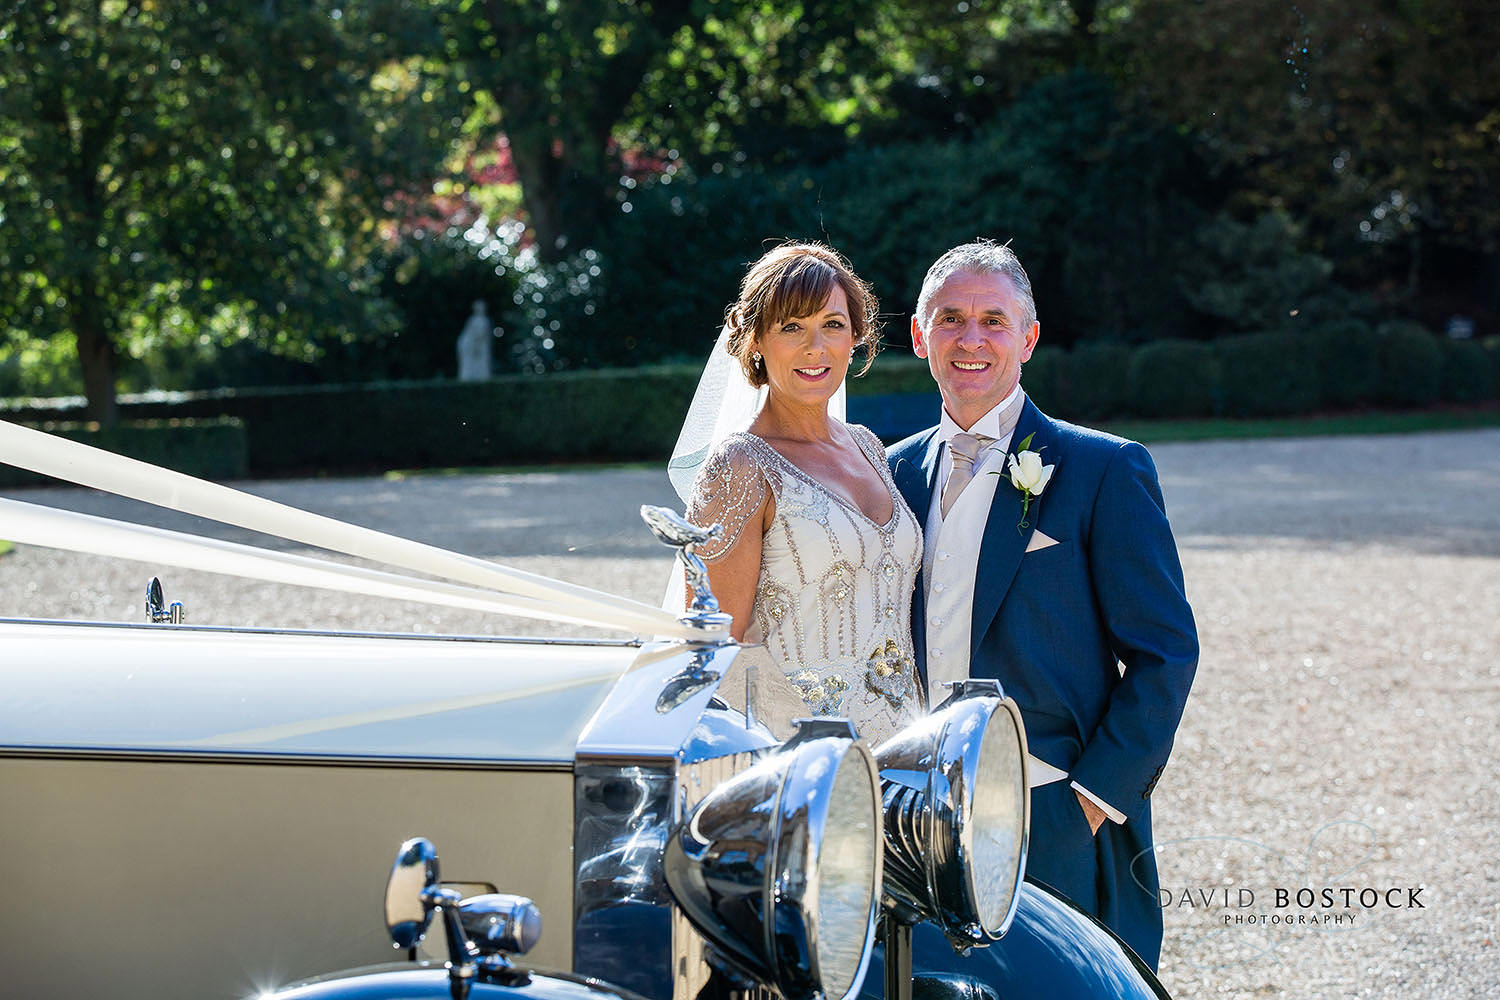 waddesdon Manor vintage car wedding